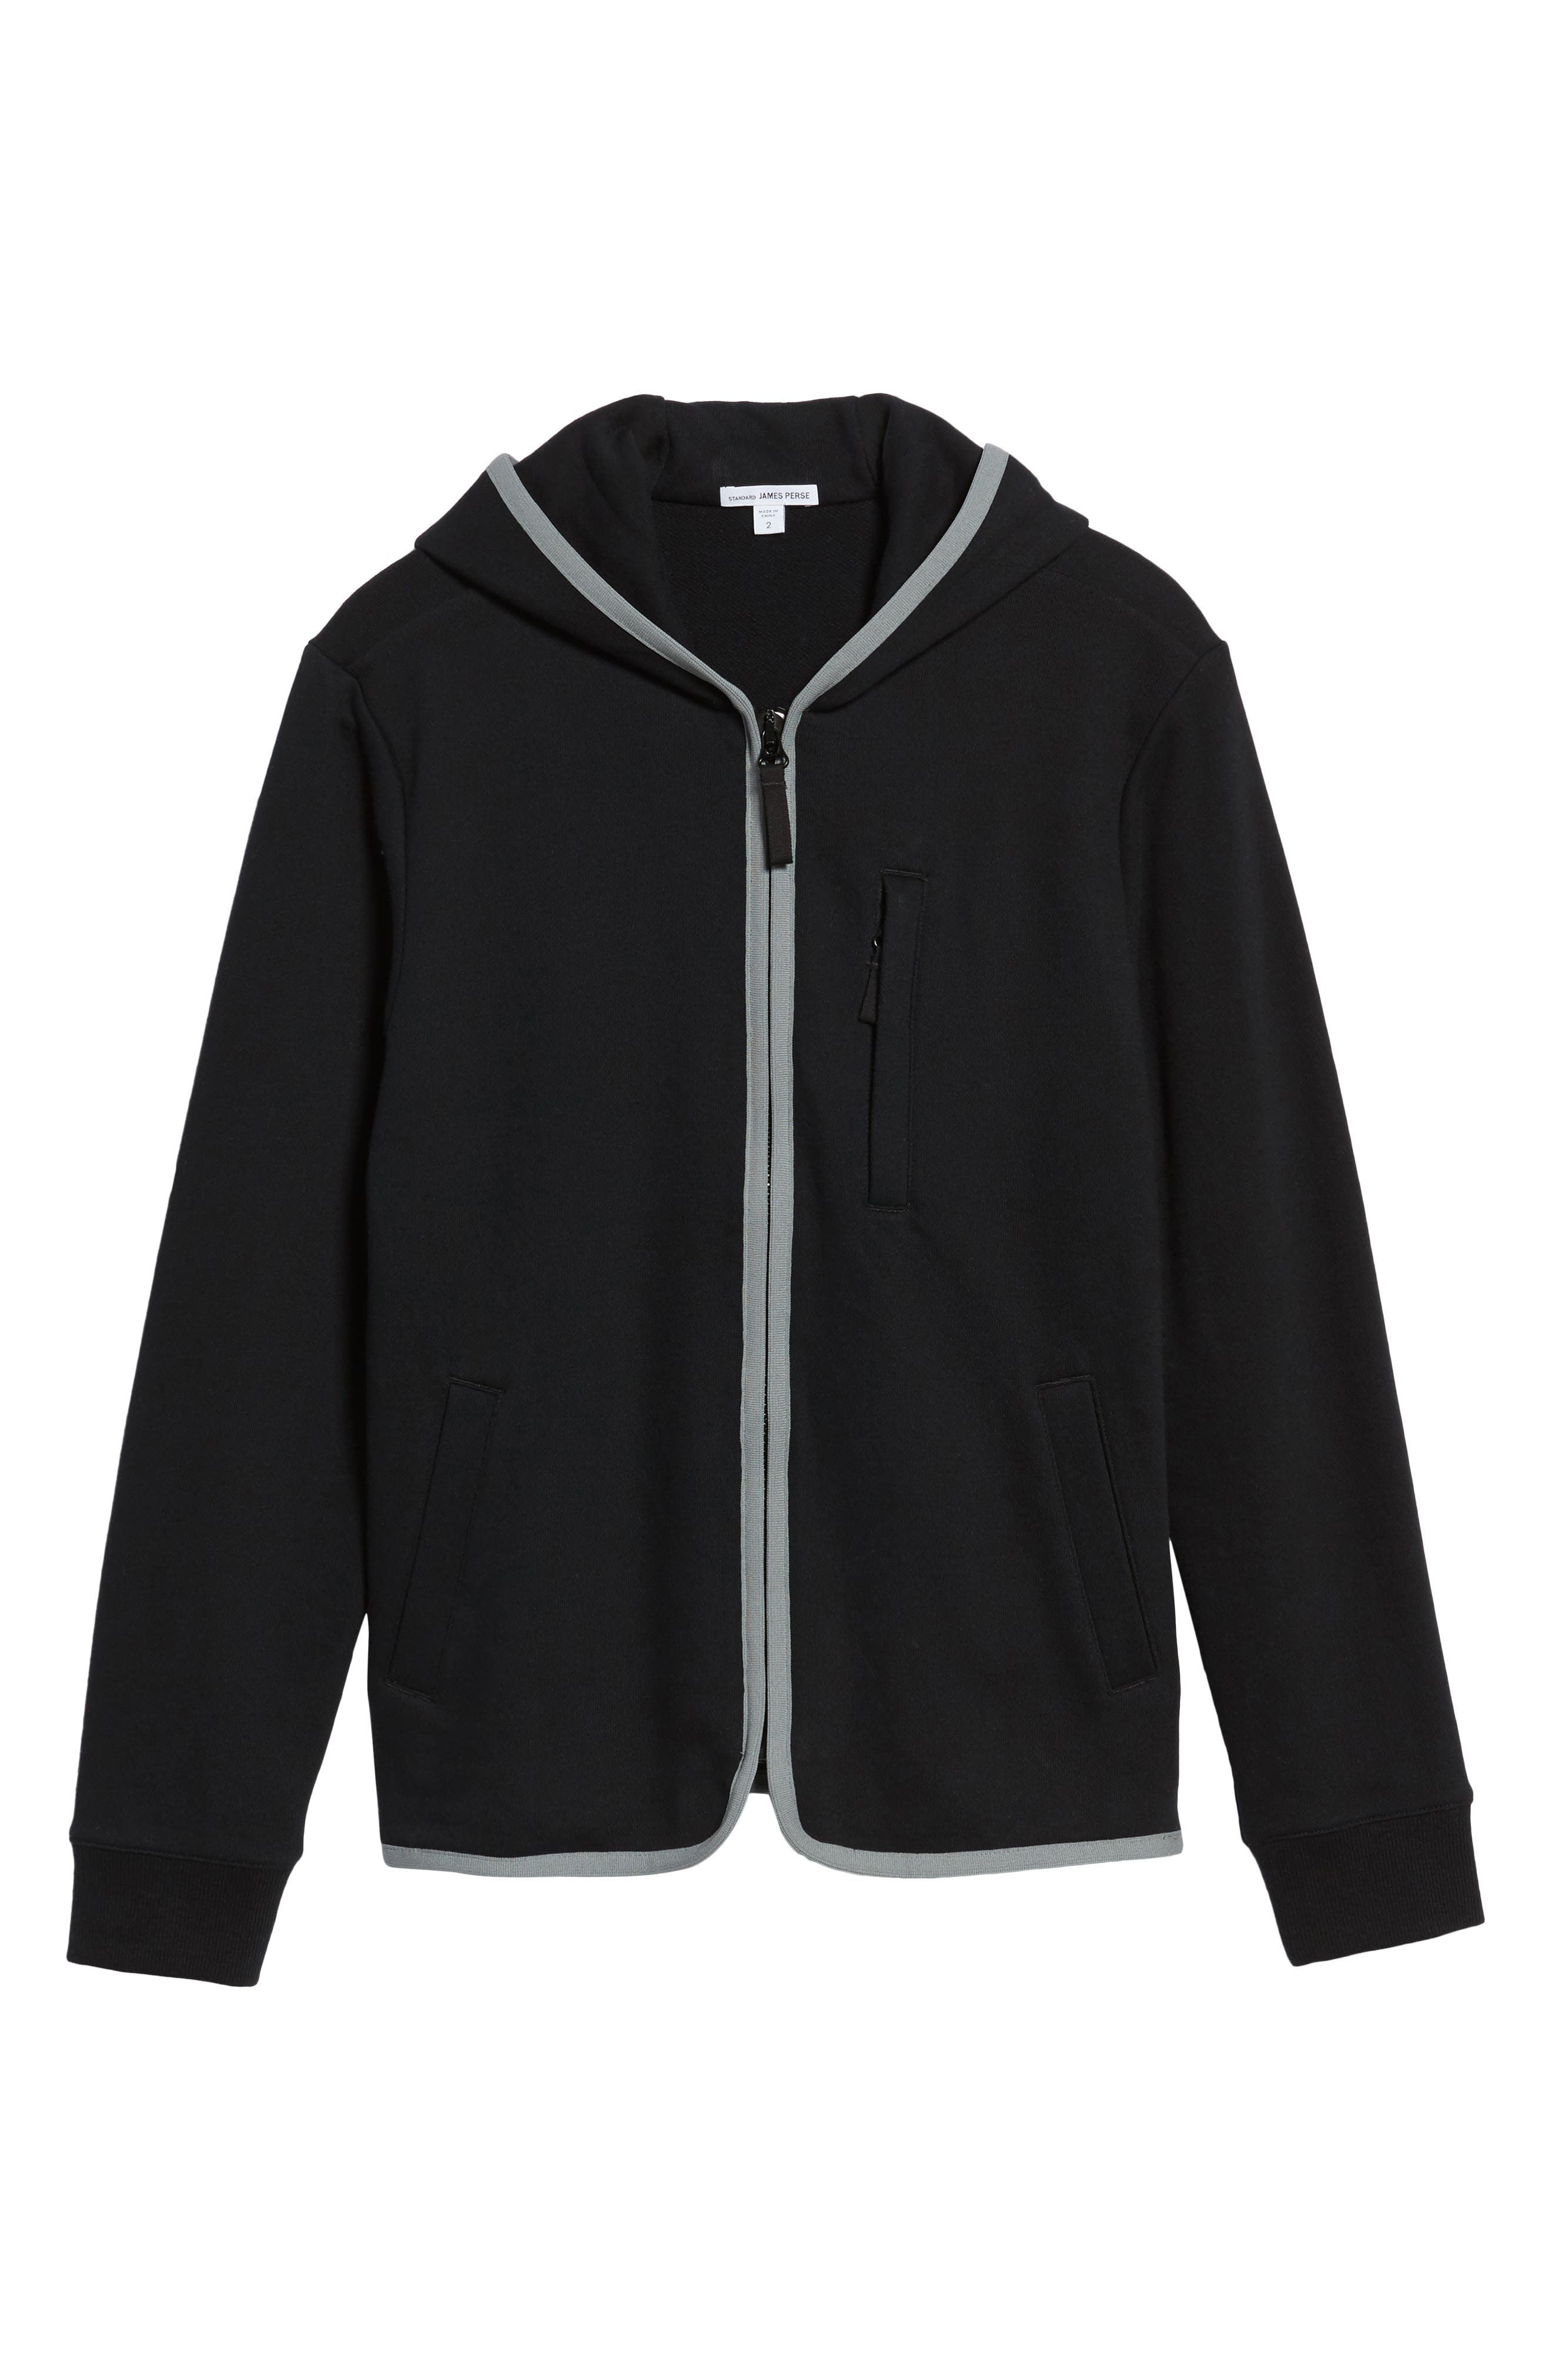 French Terry Zip Hoodie,                             Alternate thumbnail 6, color,                             015